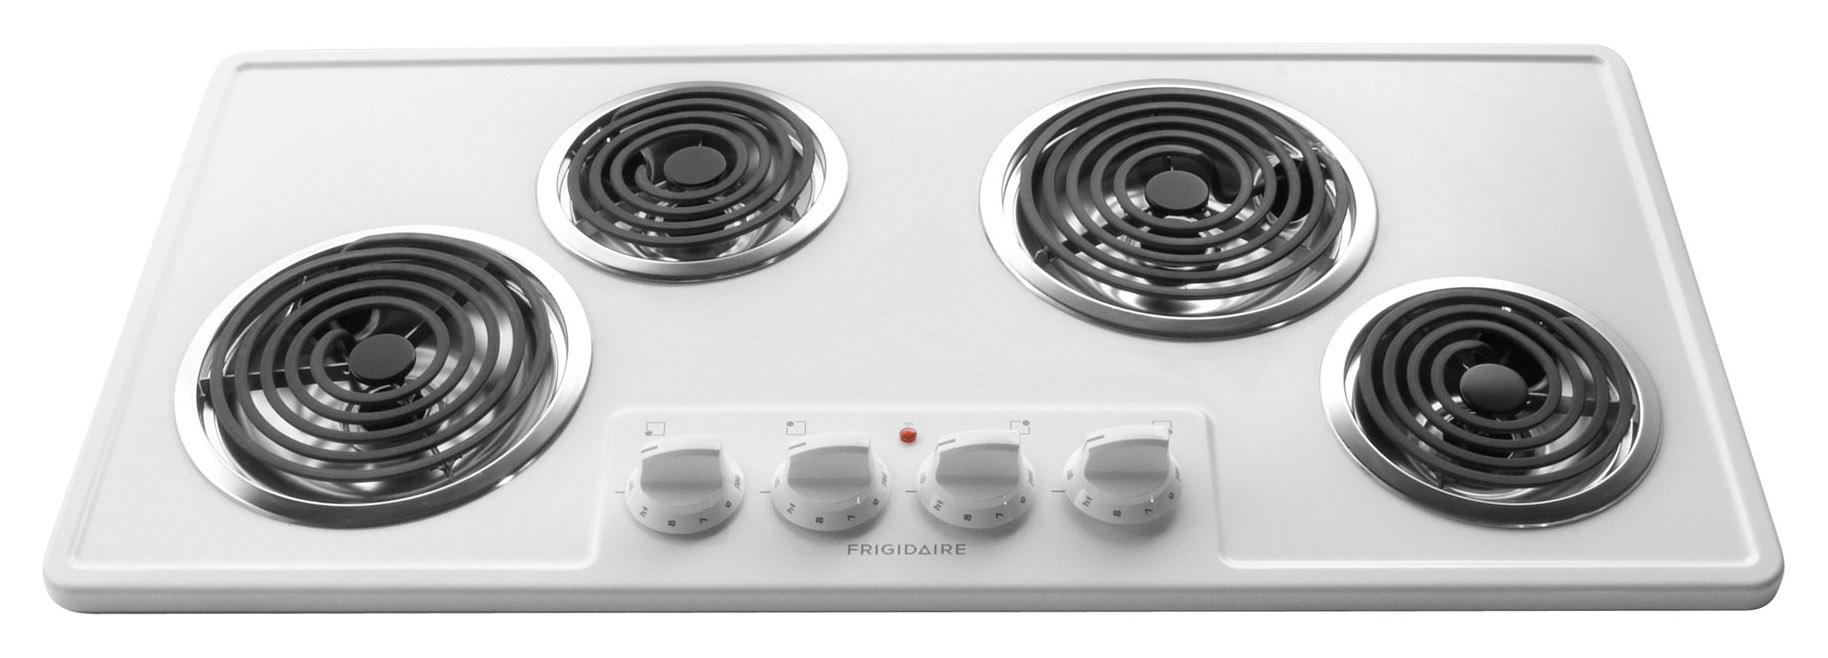 "Frigidaire Electric Cooktops 36"" Built-In Electric Cooktop - Item Number: FFEC3603LW"